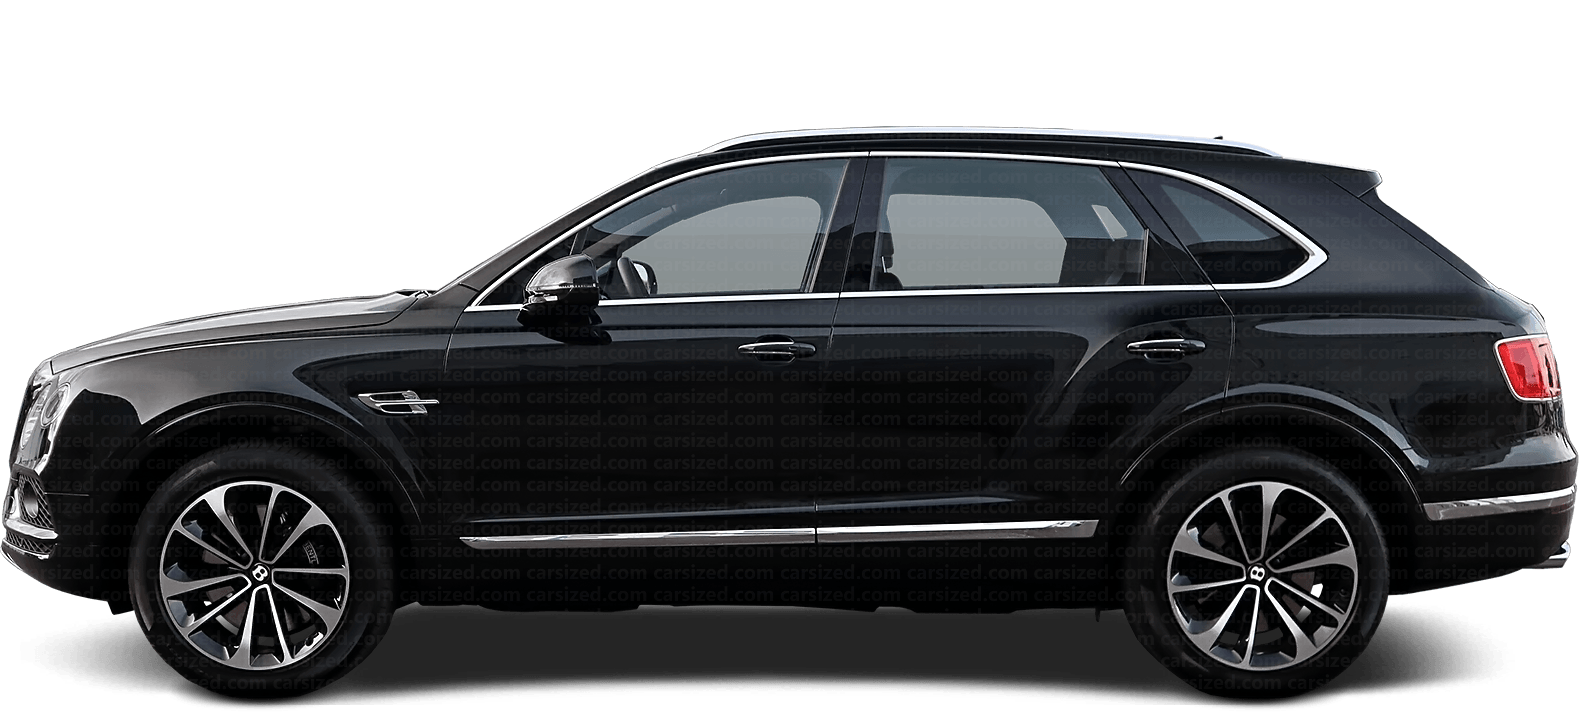 Bentley Bentayga SUV 2015-2020